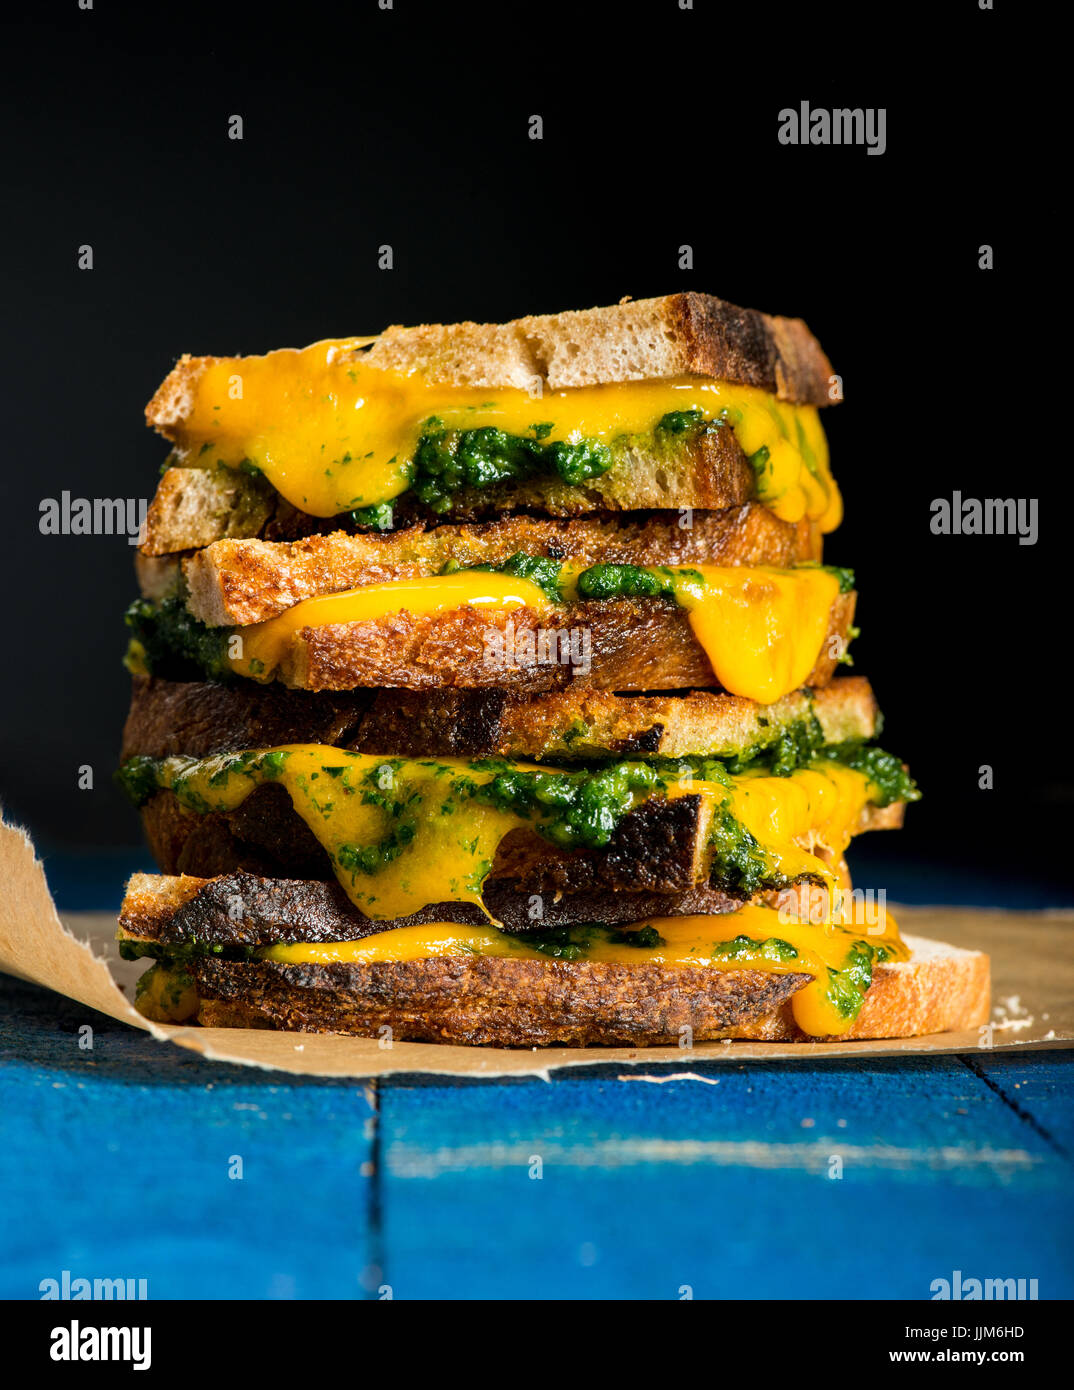 Sandwich with cheese and leek - Stock Image